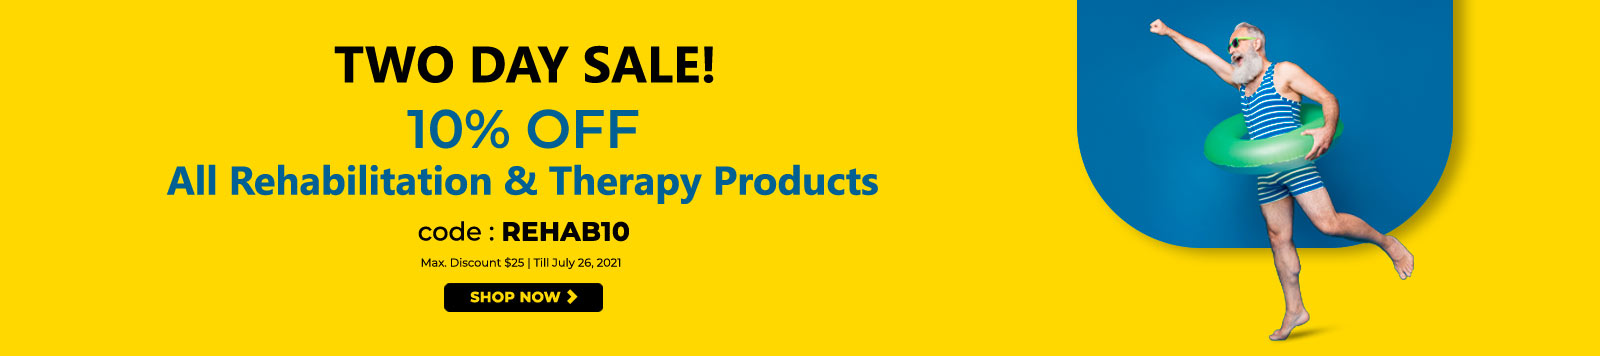 HPFY Two Day Sale